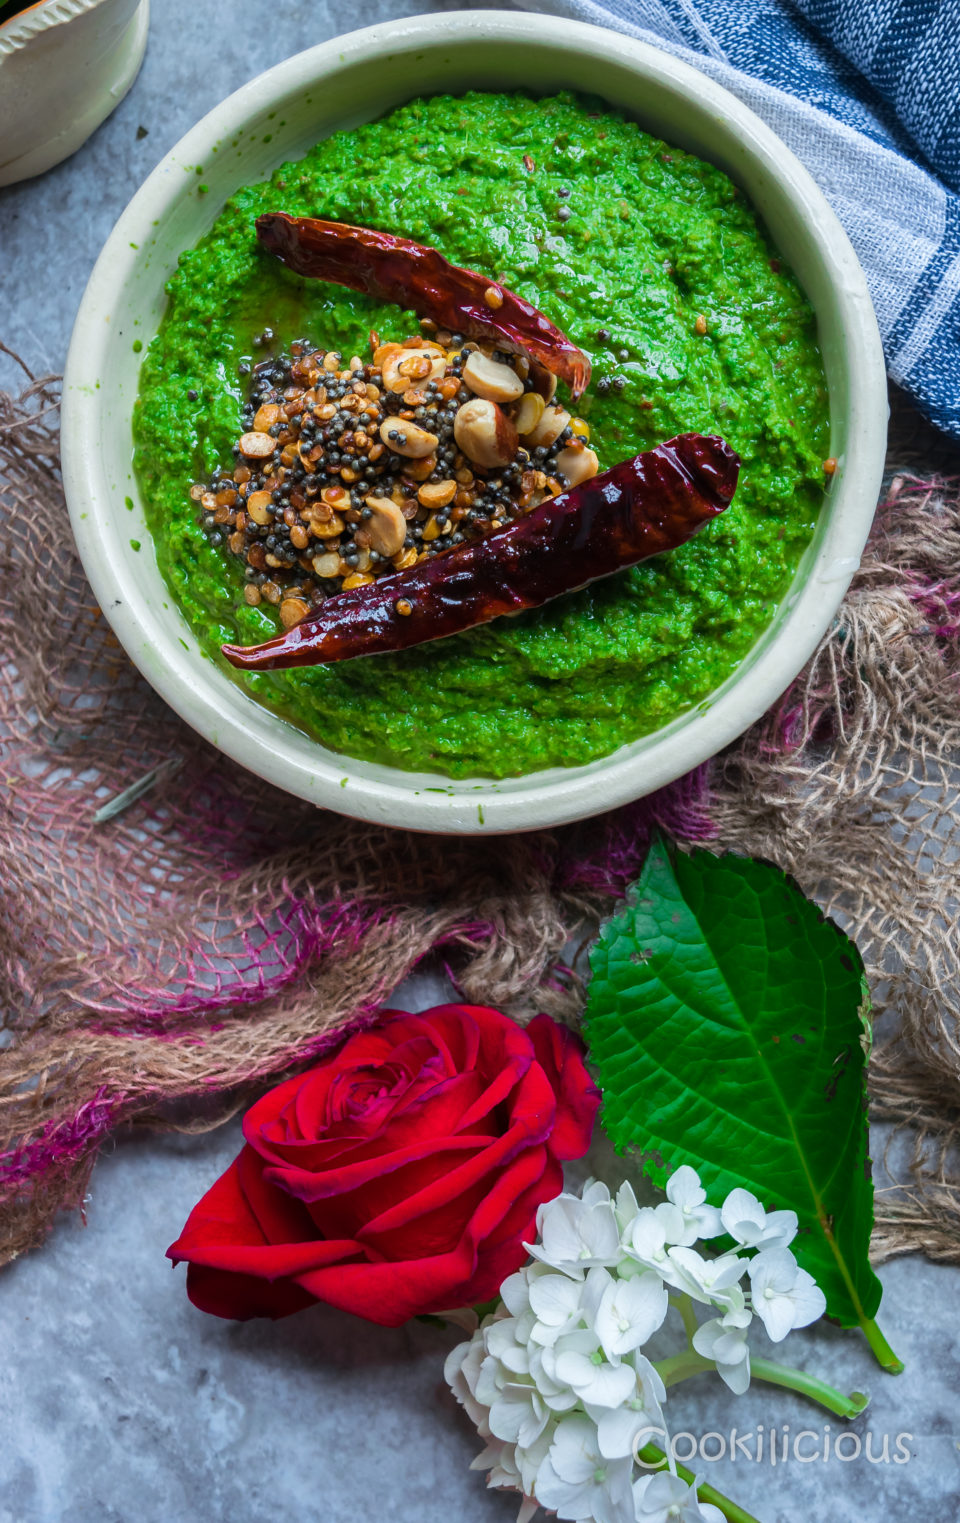 A bowl of Vegan Spinach & Peanut Chutney with tadka on top and a red rose around it.